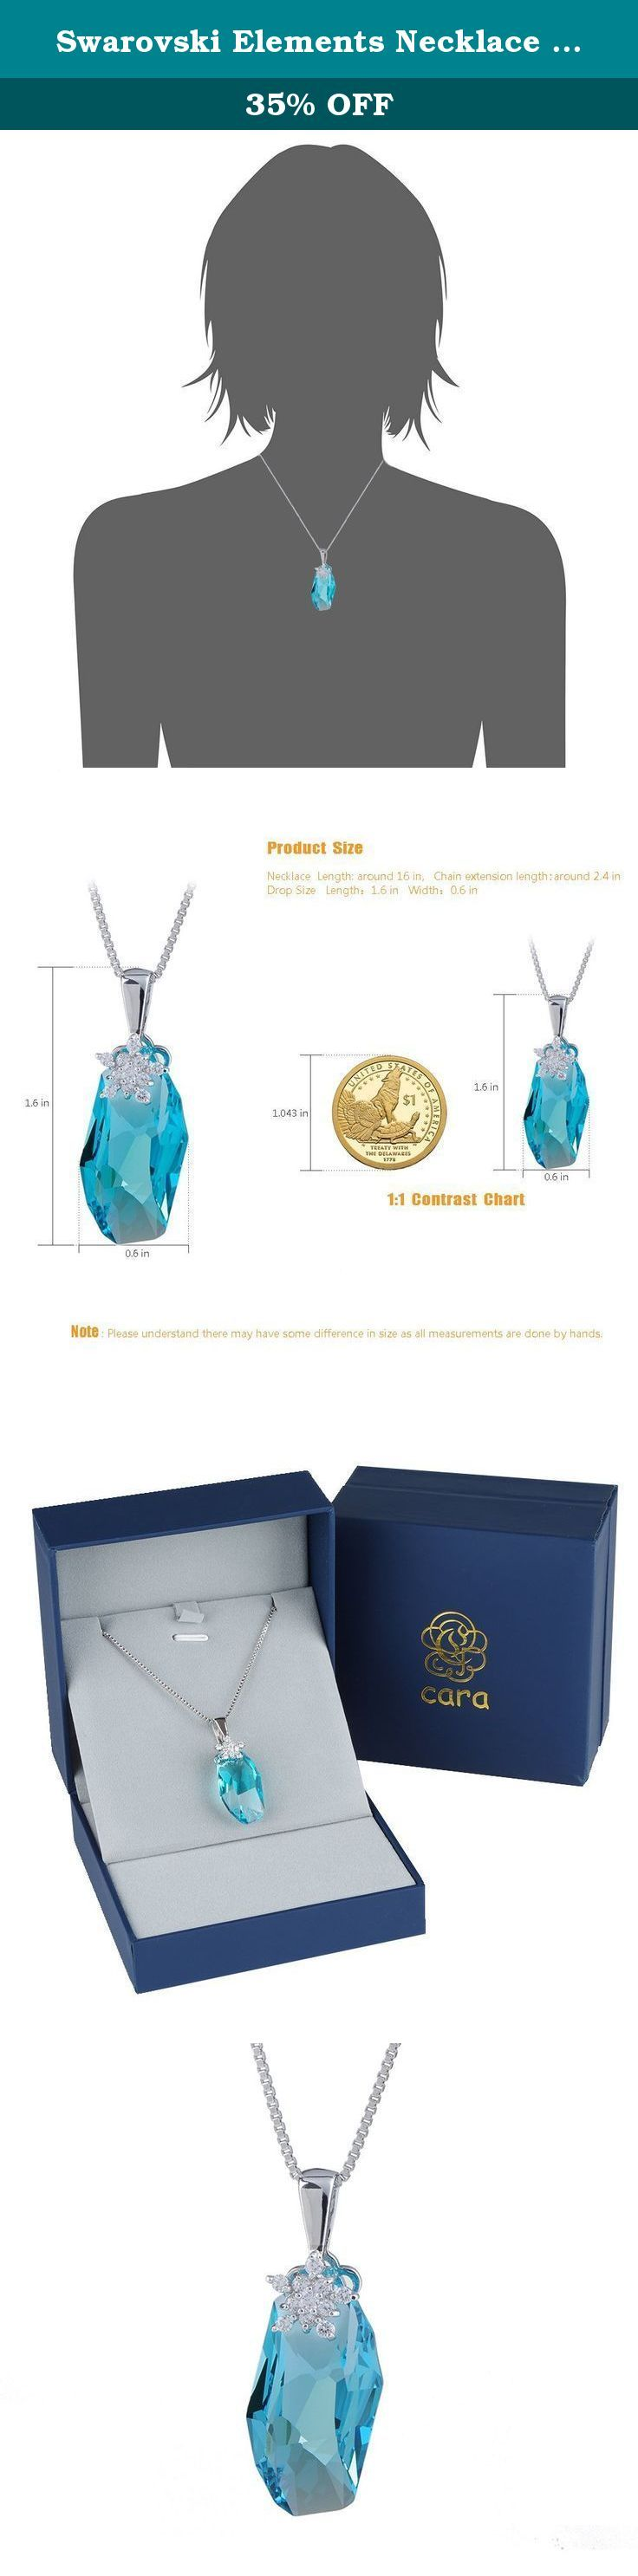 Swarovski Elements Necklace Women Wishing Stone Necklaces Pendant Crystal for Valentine's Day Party Birthday Gift Girlfriend Necklace Blue. Welcome to our Amazon store, enjoy your shopping! Please contact us firstly if you have any question Cara crystal is committed to provide the best jewelry and the best customer services to our customers, your feedback is our motivations to improve. We are looking forward to your ☆☆☆☆☆ feedback. Make sure you have Add this item to your Wish List to…